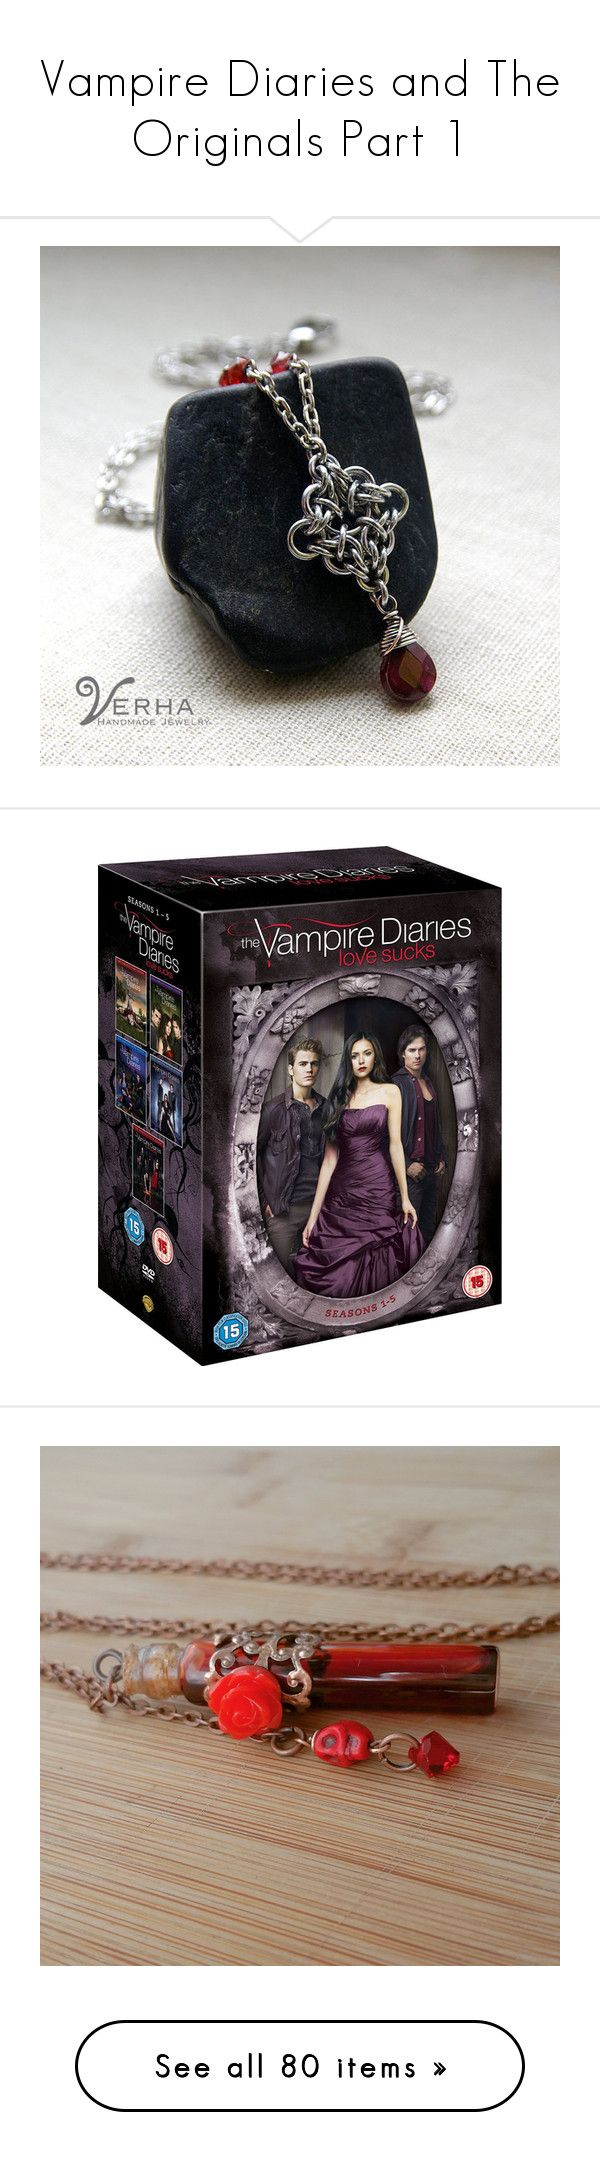 """""""Vampire Diaries and The Originals Part 1"""" by adorablequeen ❤ liked on Polyvore featuring jewelry, necklaces, garnet jewelry, garnet jewellery, garnet necklace, movies, films, vampire diaries, tops and t-shirts"""